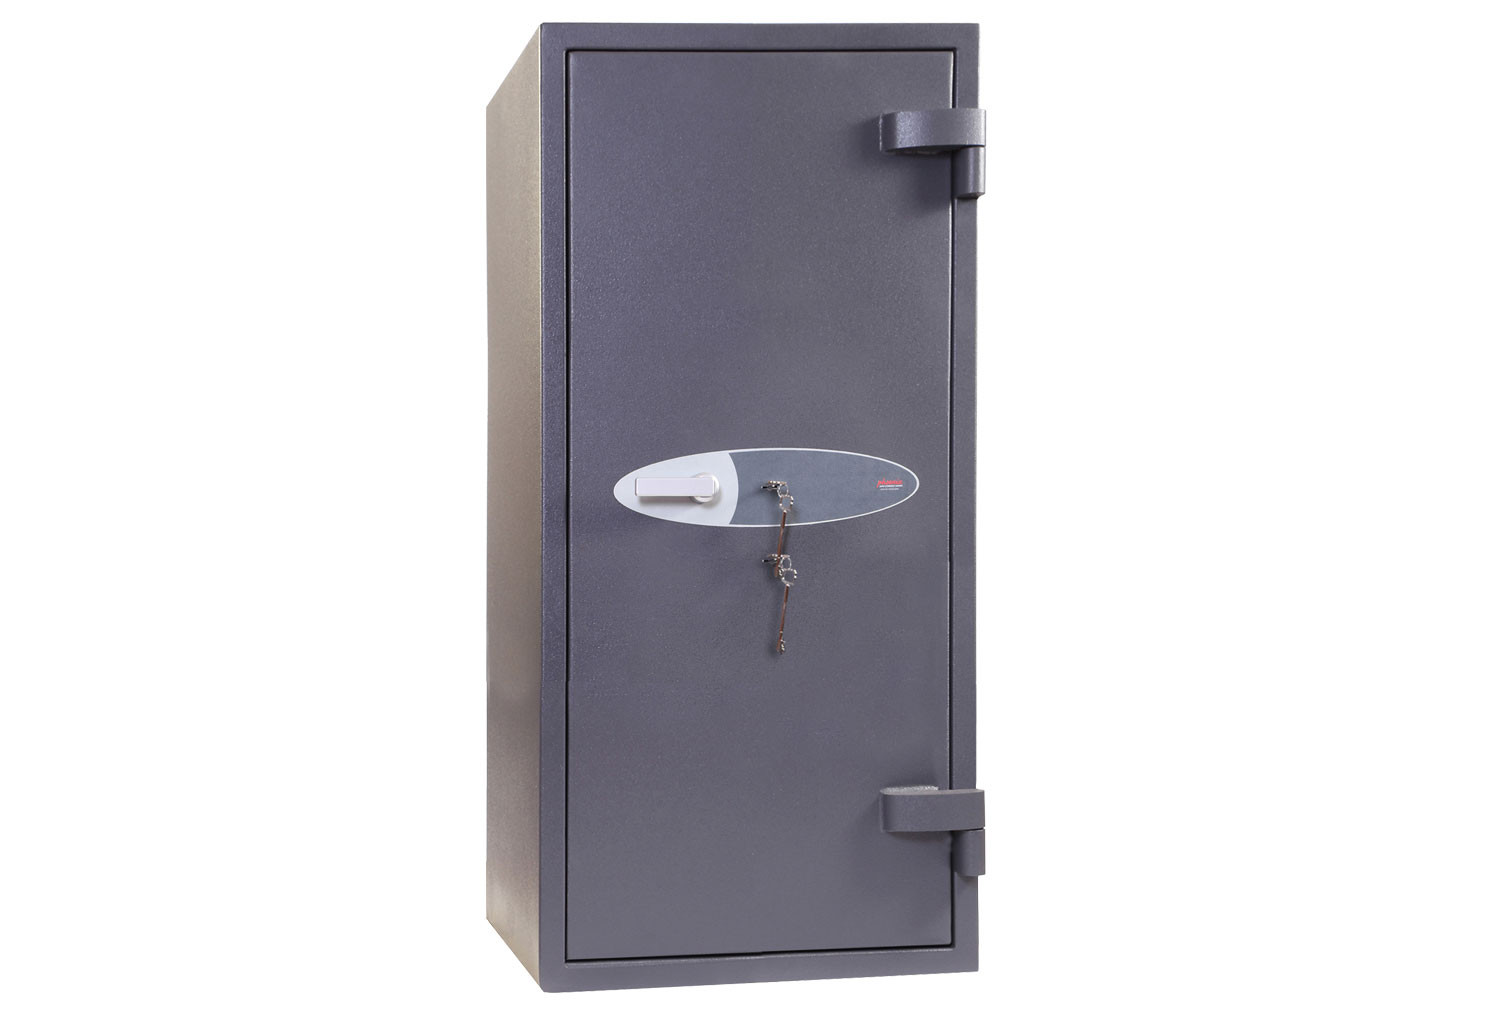 Phoenix Cosmos HS9075K High Security Safe With Key Lock (342ltrs)